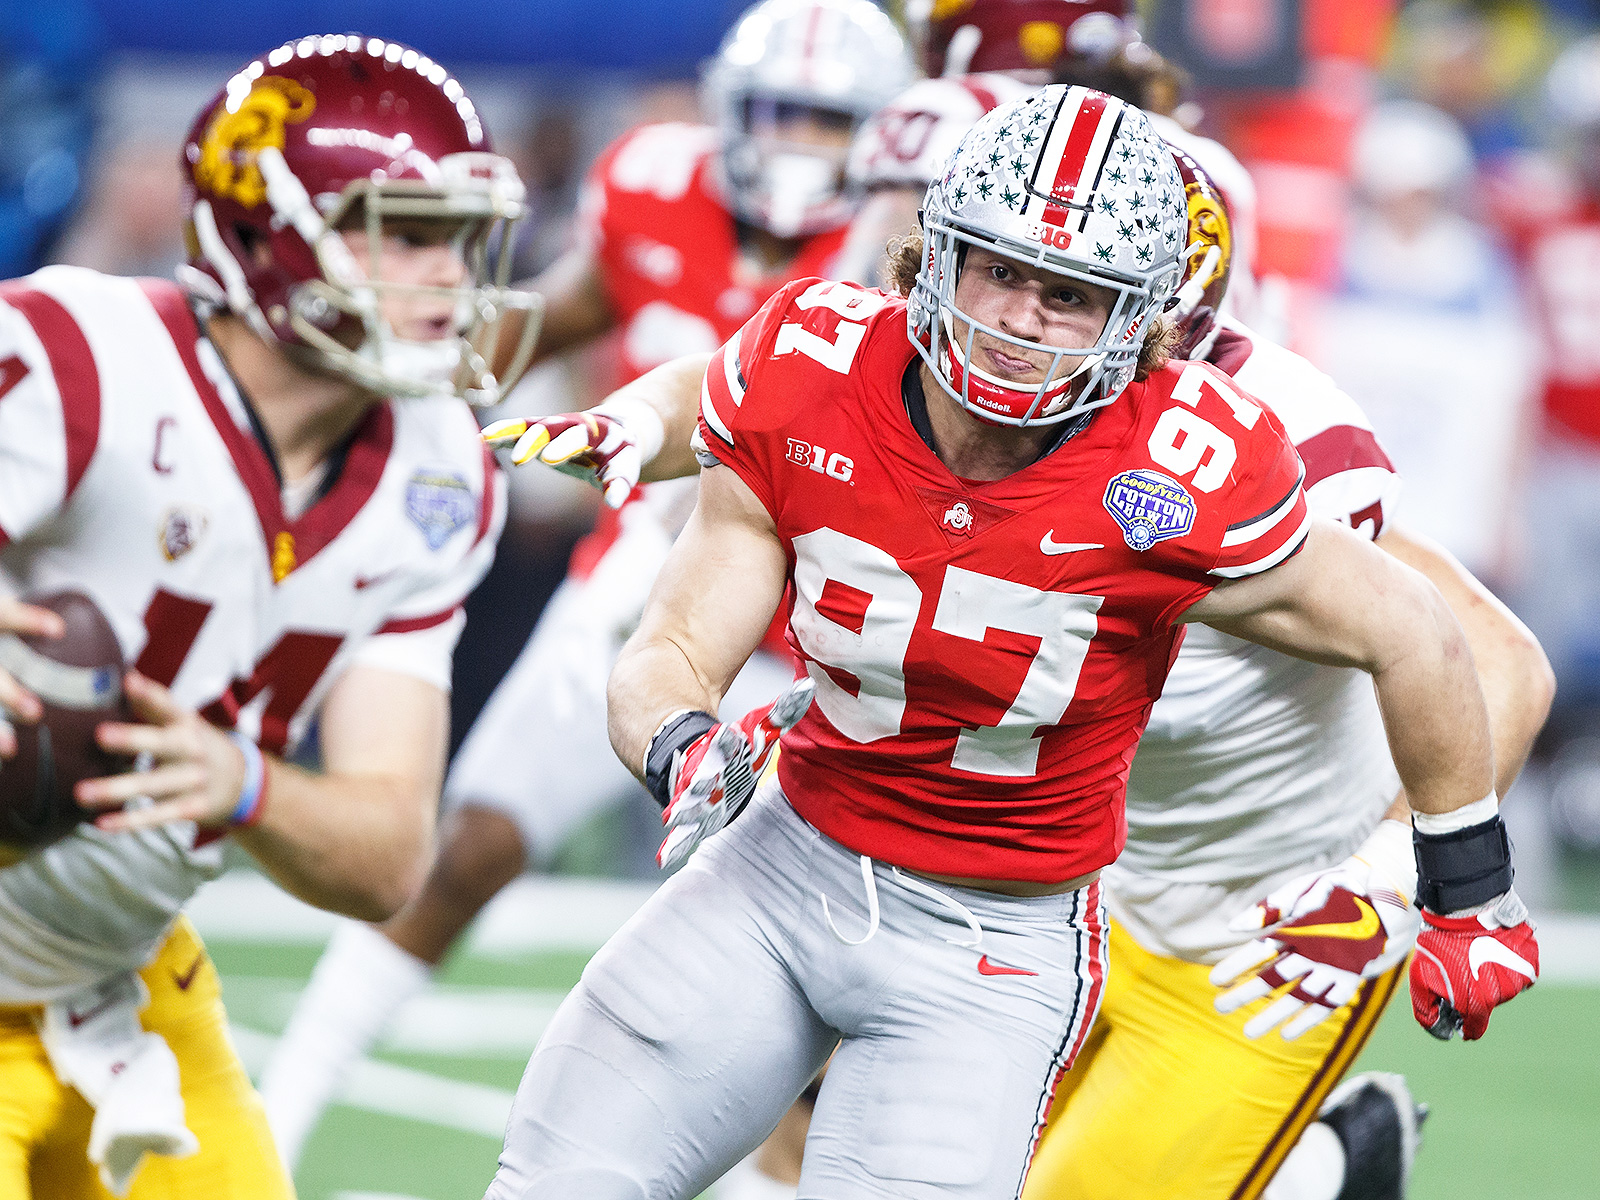 Ohio State Nick Bosa